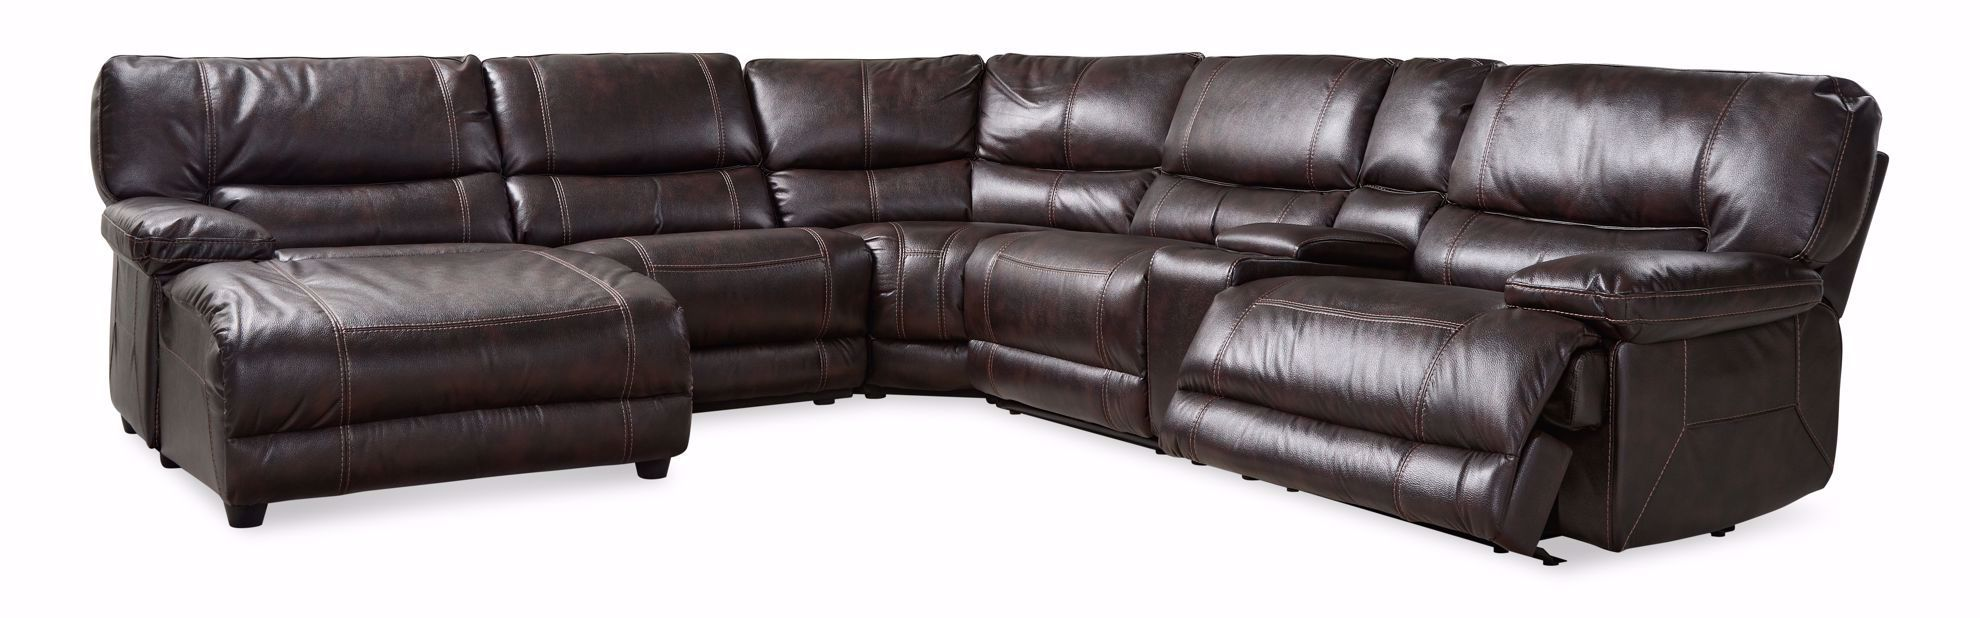 Picture of Rey Walnut 6-Piece Reclining Sectional With Chaise